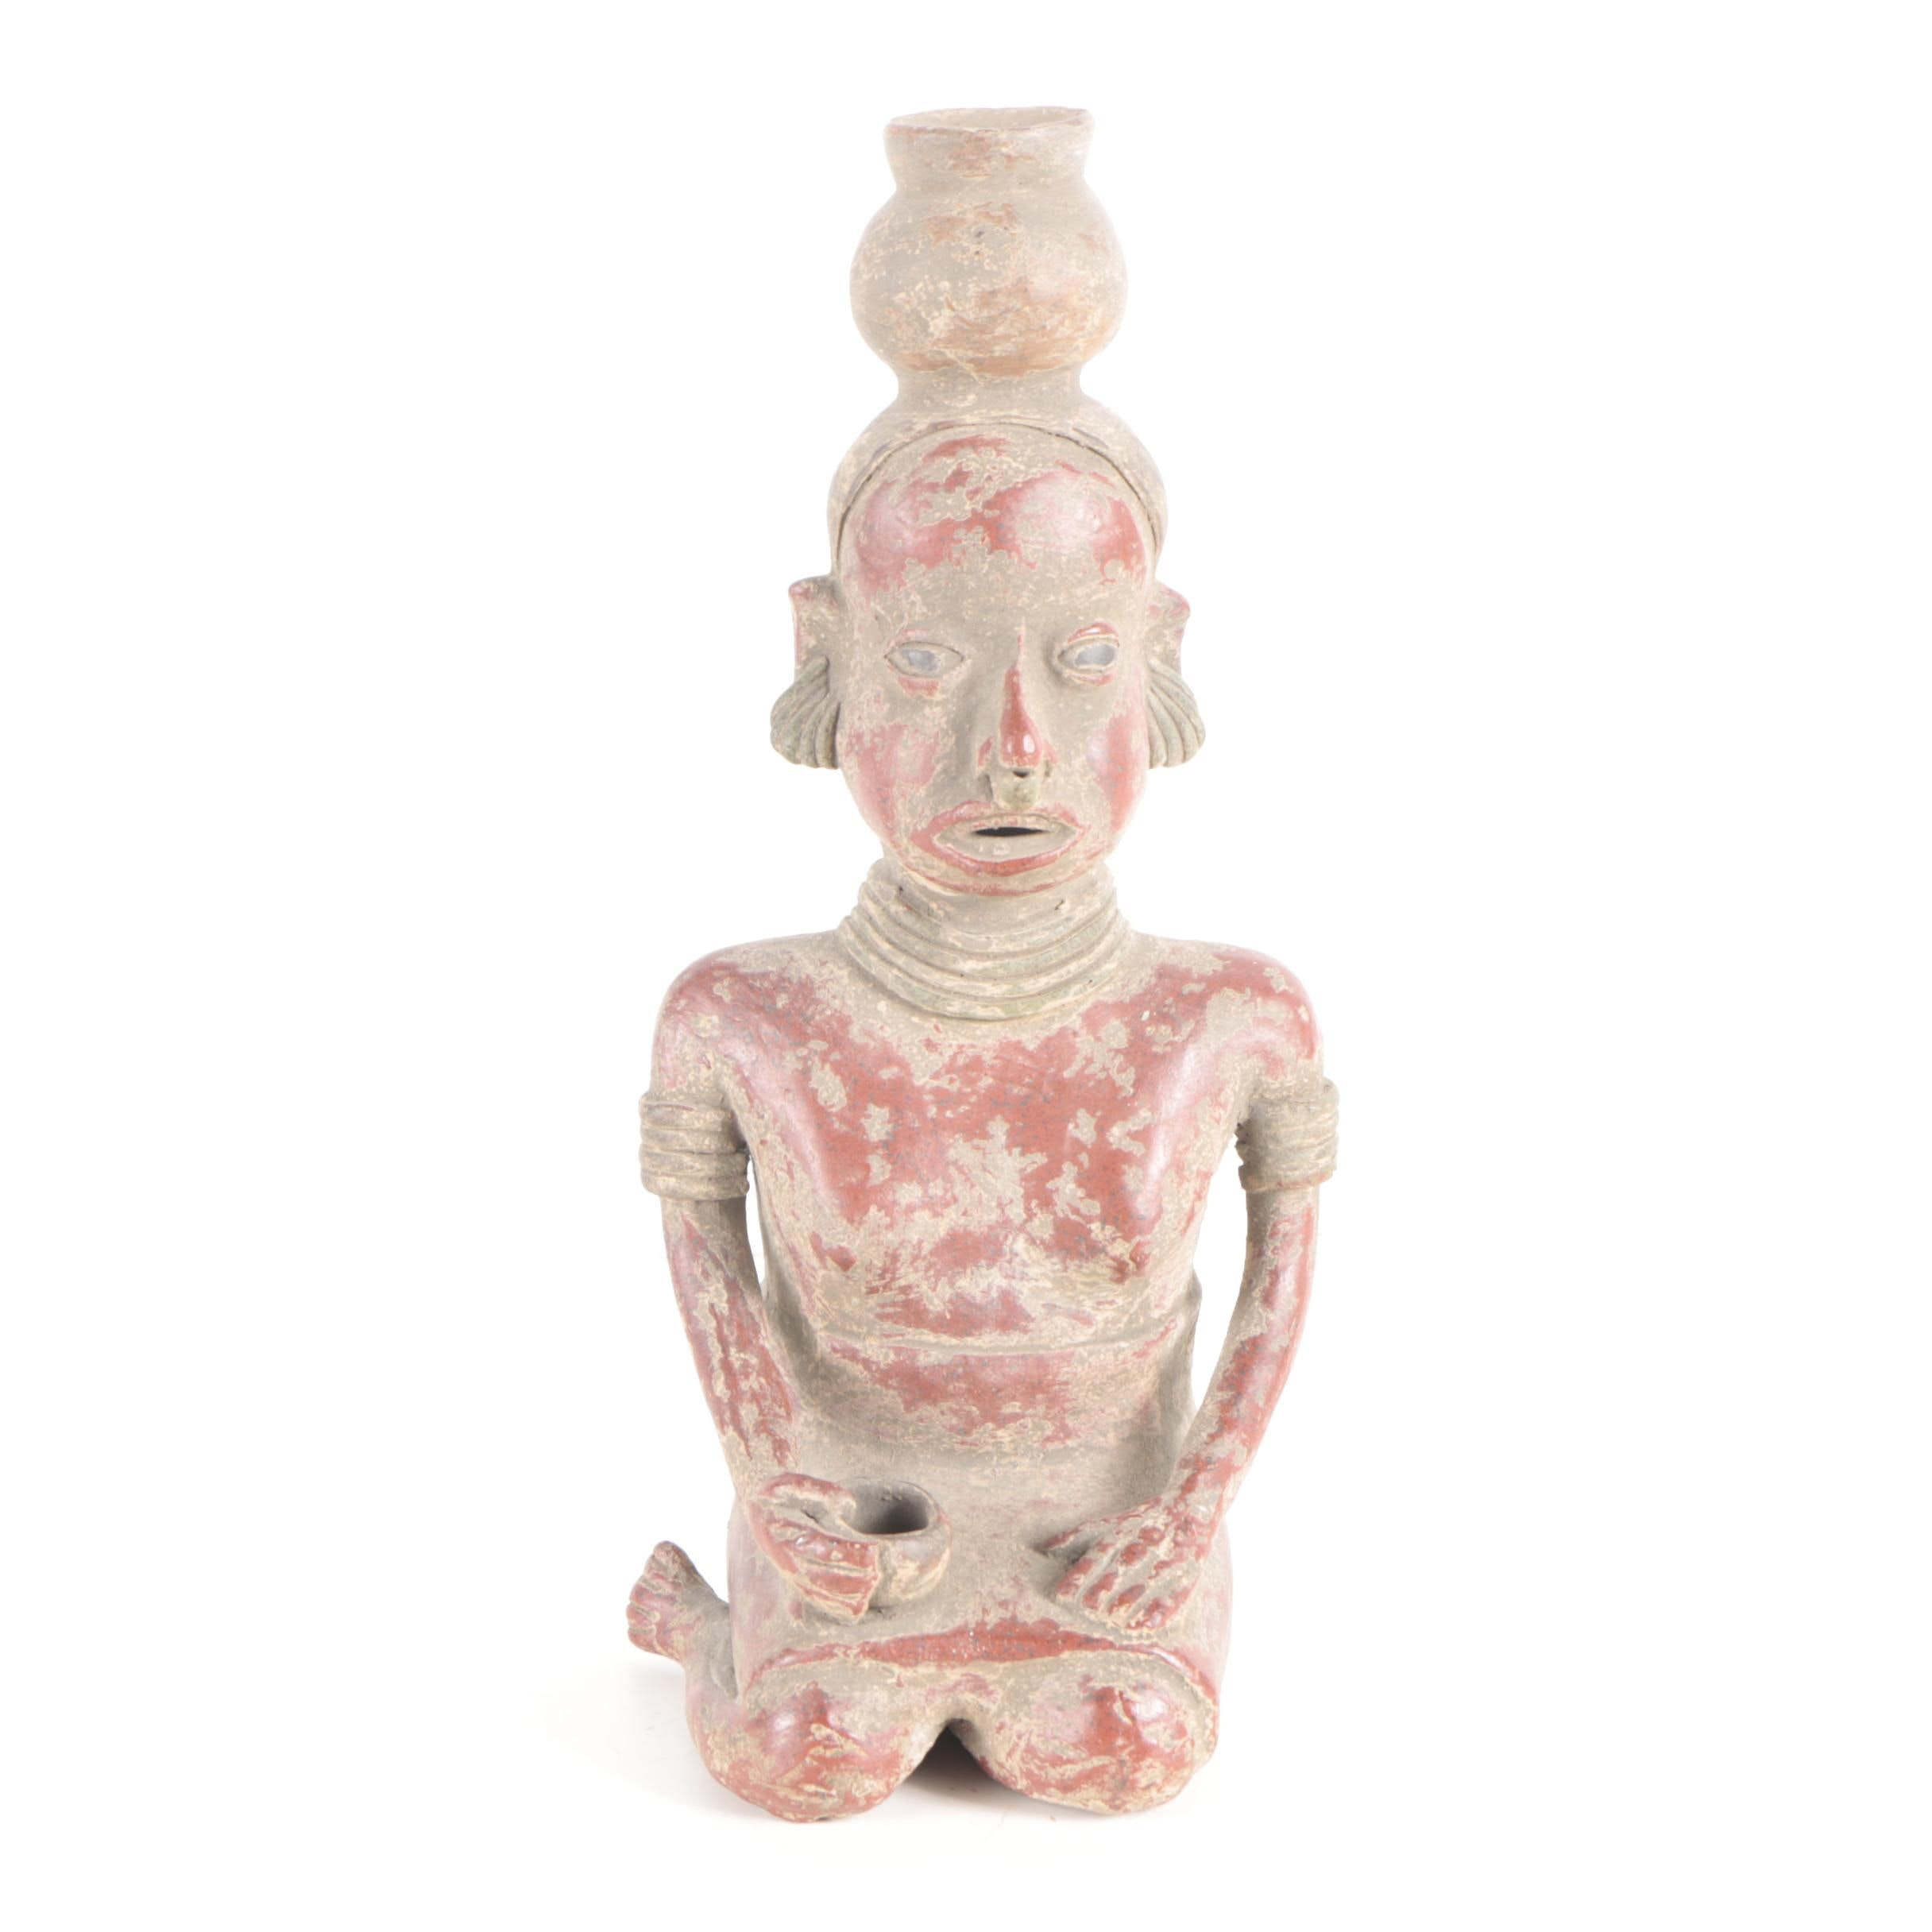 20th Century Nayarit Style Ceramic Sculpture of a Woman